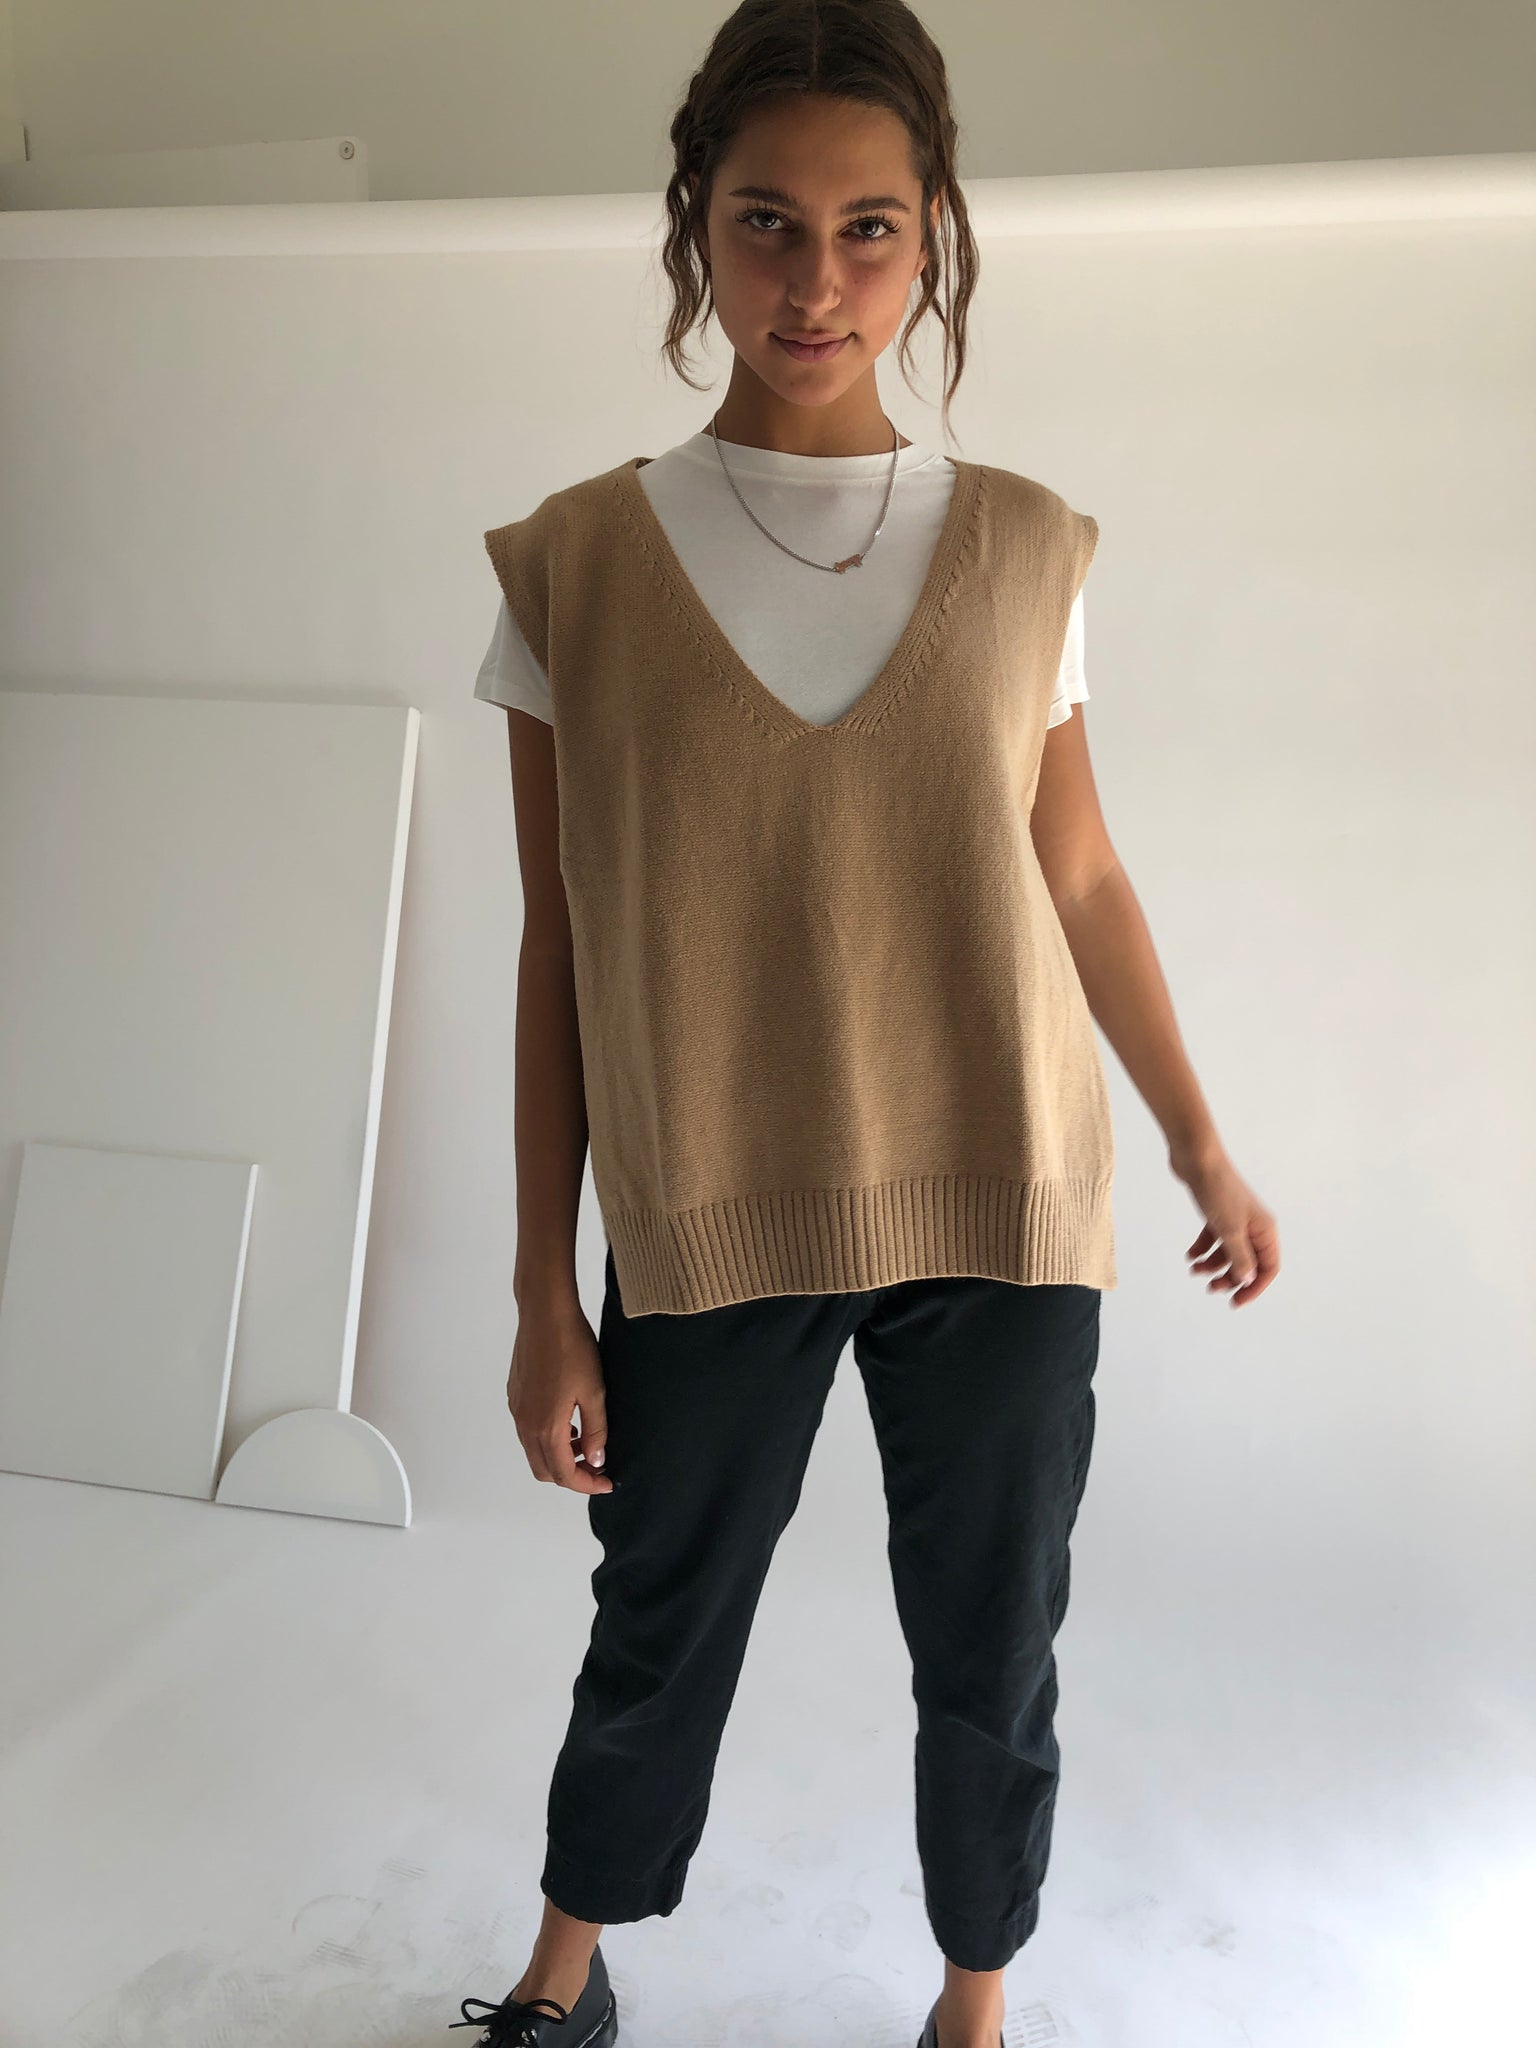 The Mona Sweater Vest